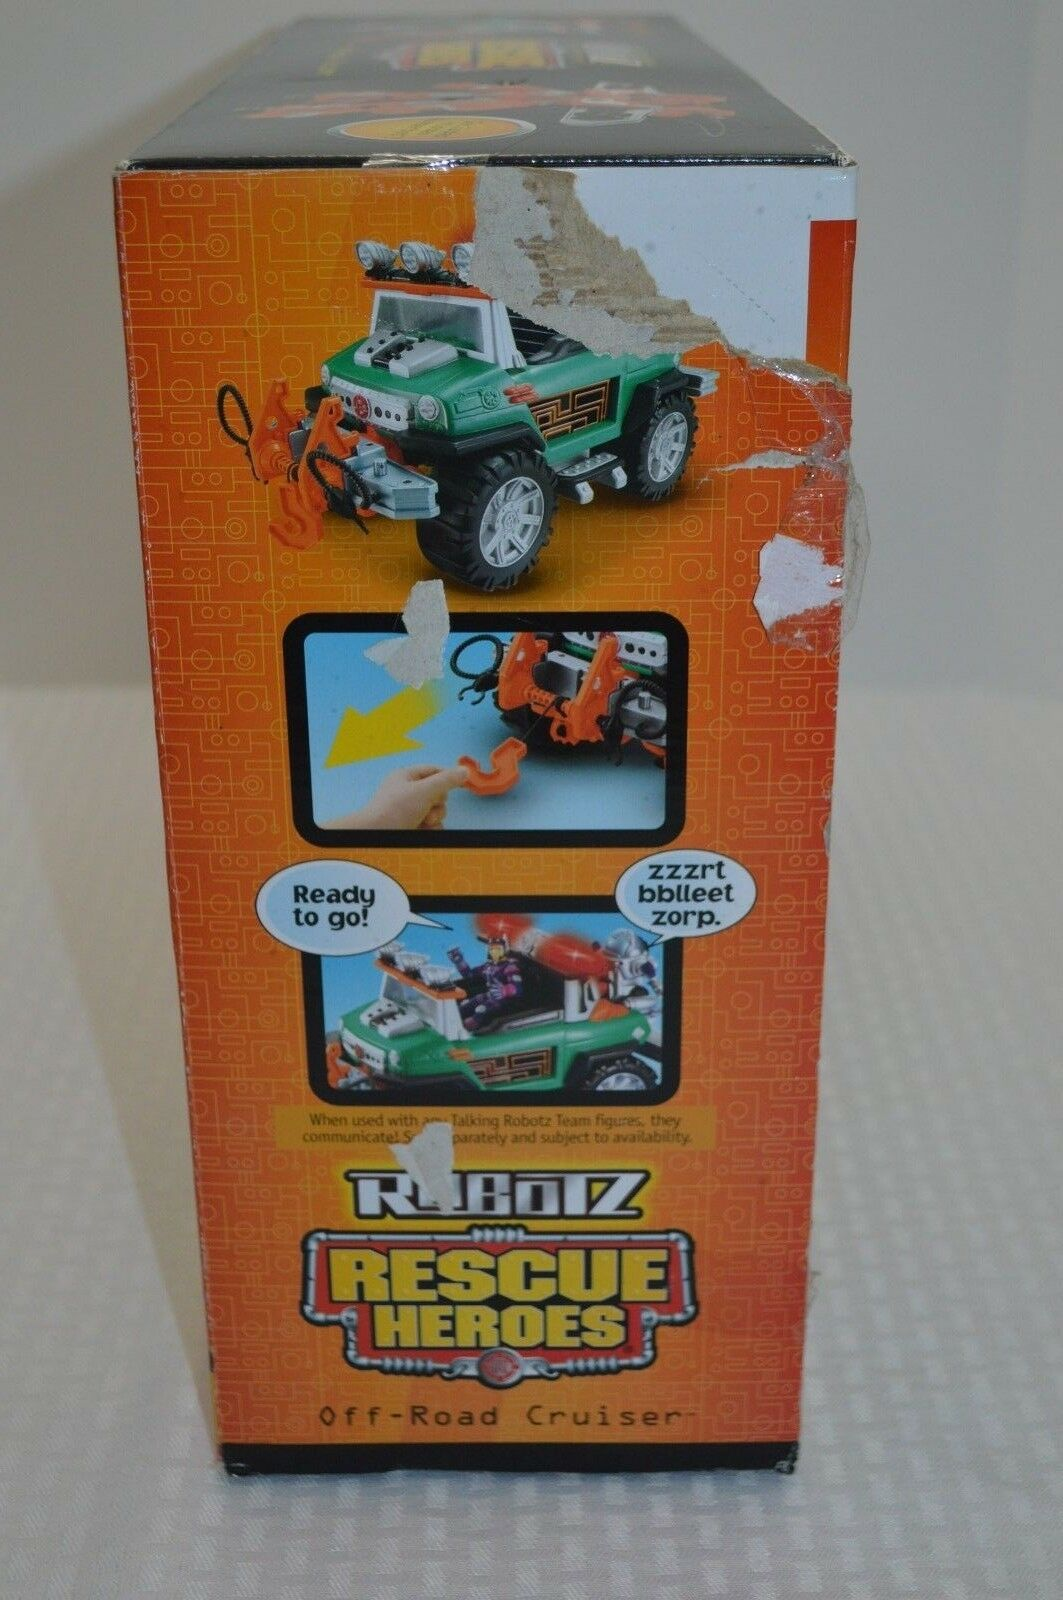 NEW FISHER PRICE RESCUE RESCUE RESCUE HEROES ROBOTZ OFF ROAD JEEP CRUISER & BUMPERBOT C7463 3b98bb